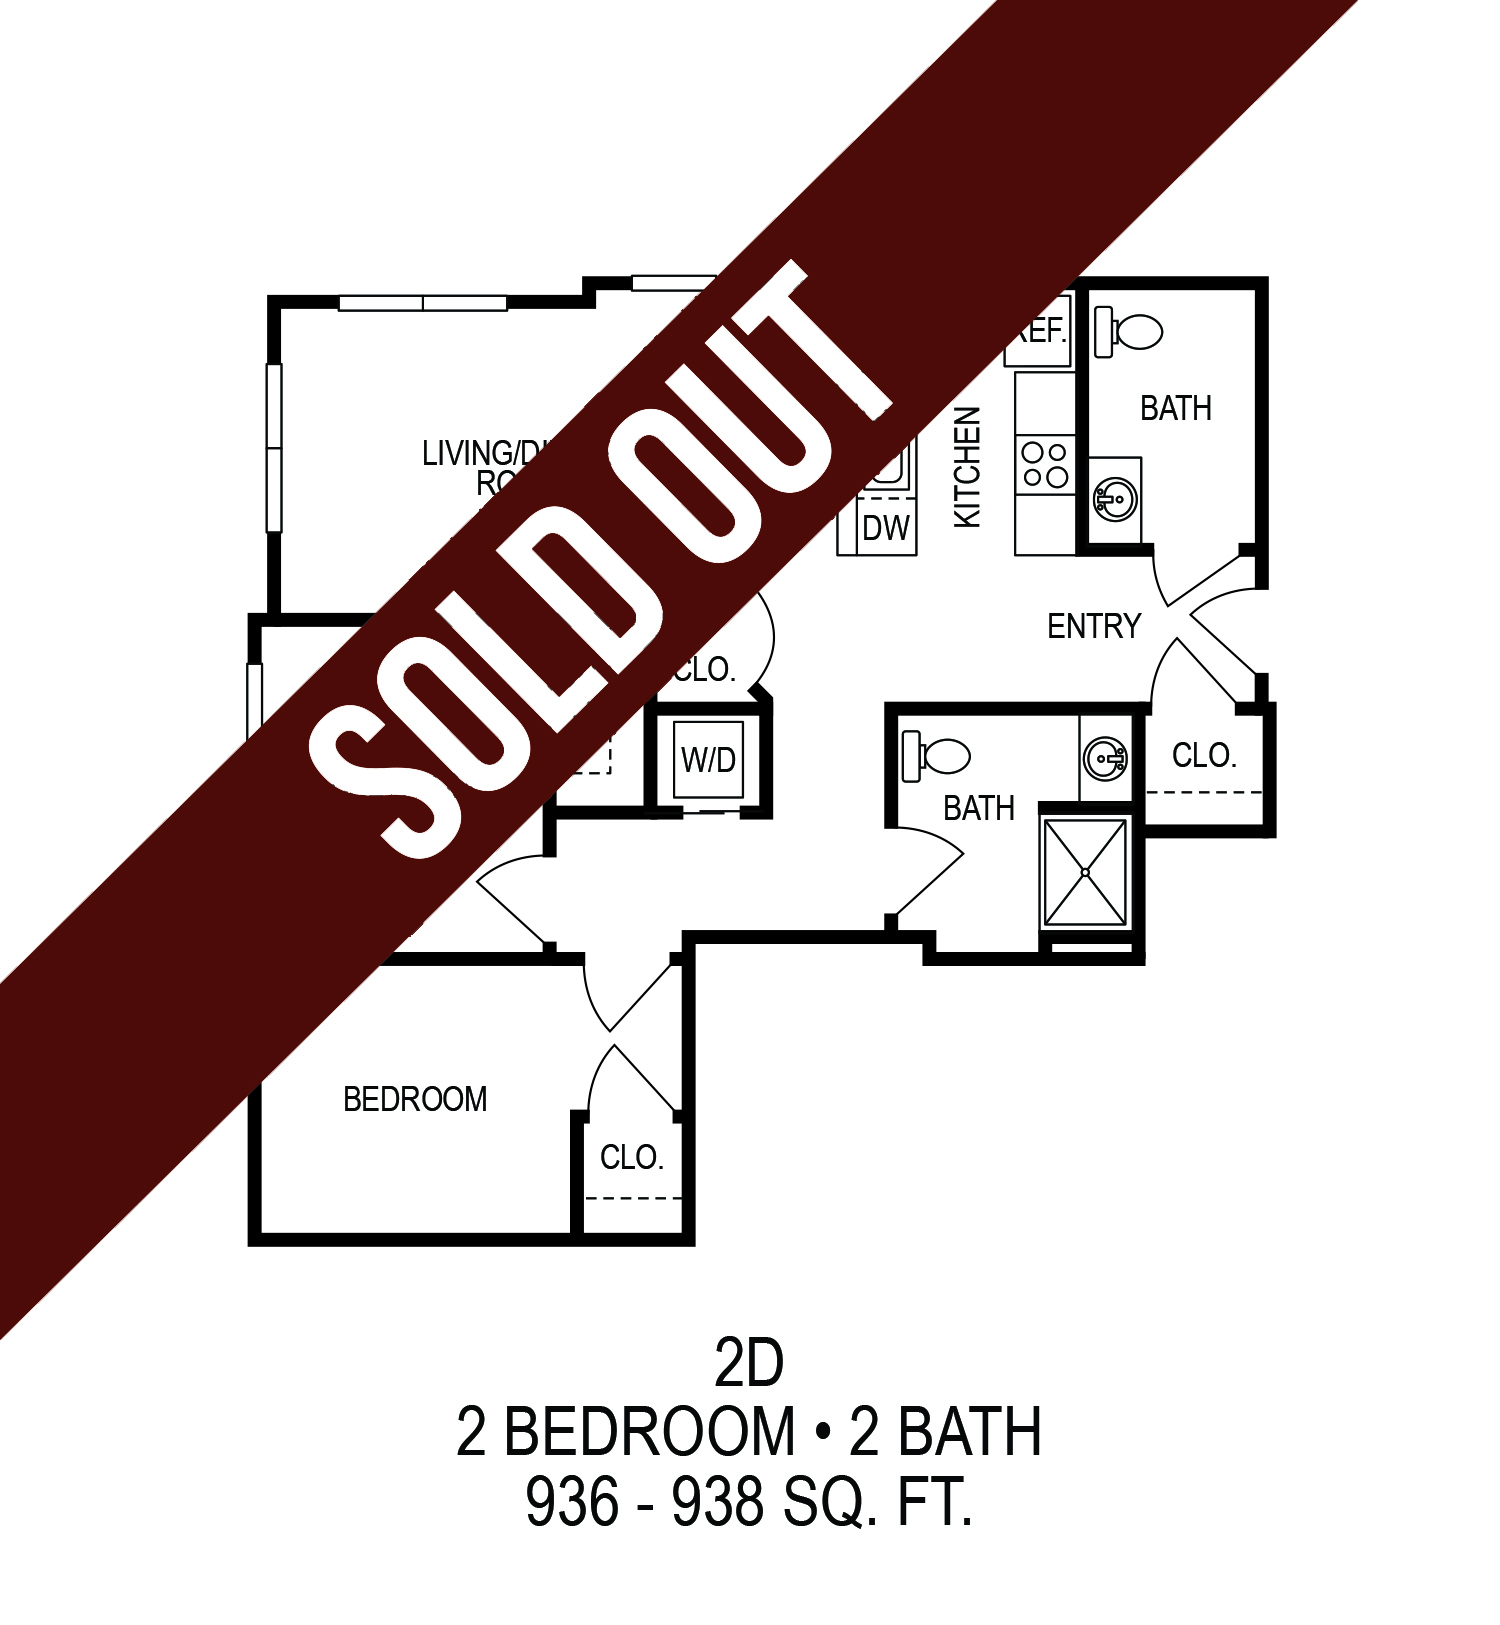 625 S. Goodman Apartments - Floorplan - Two Bedroom (D)*